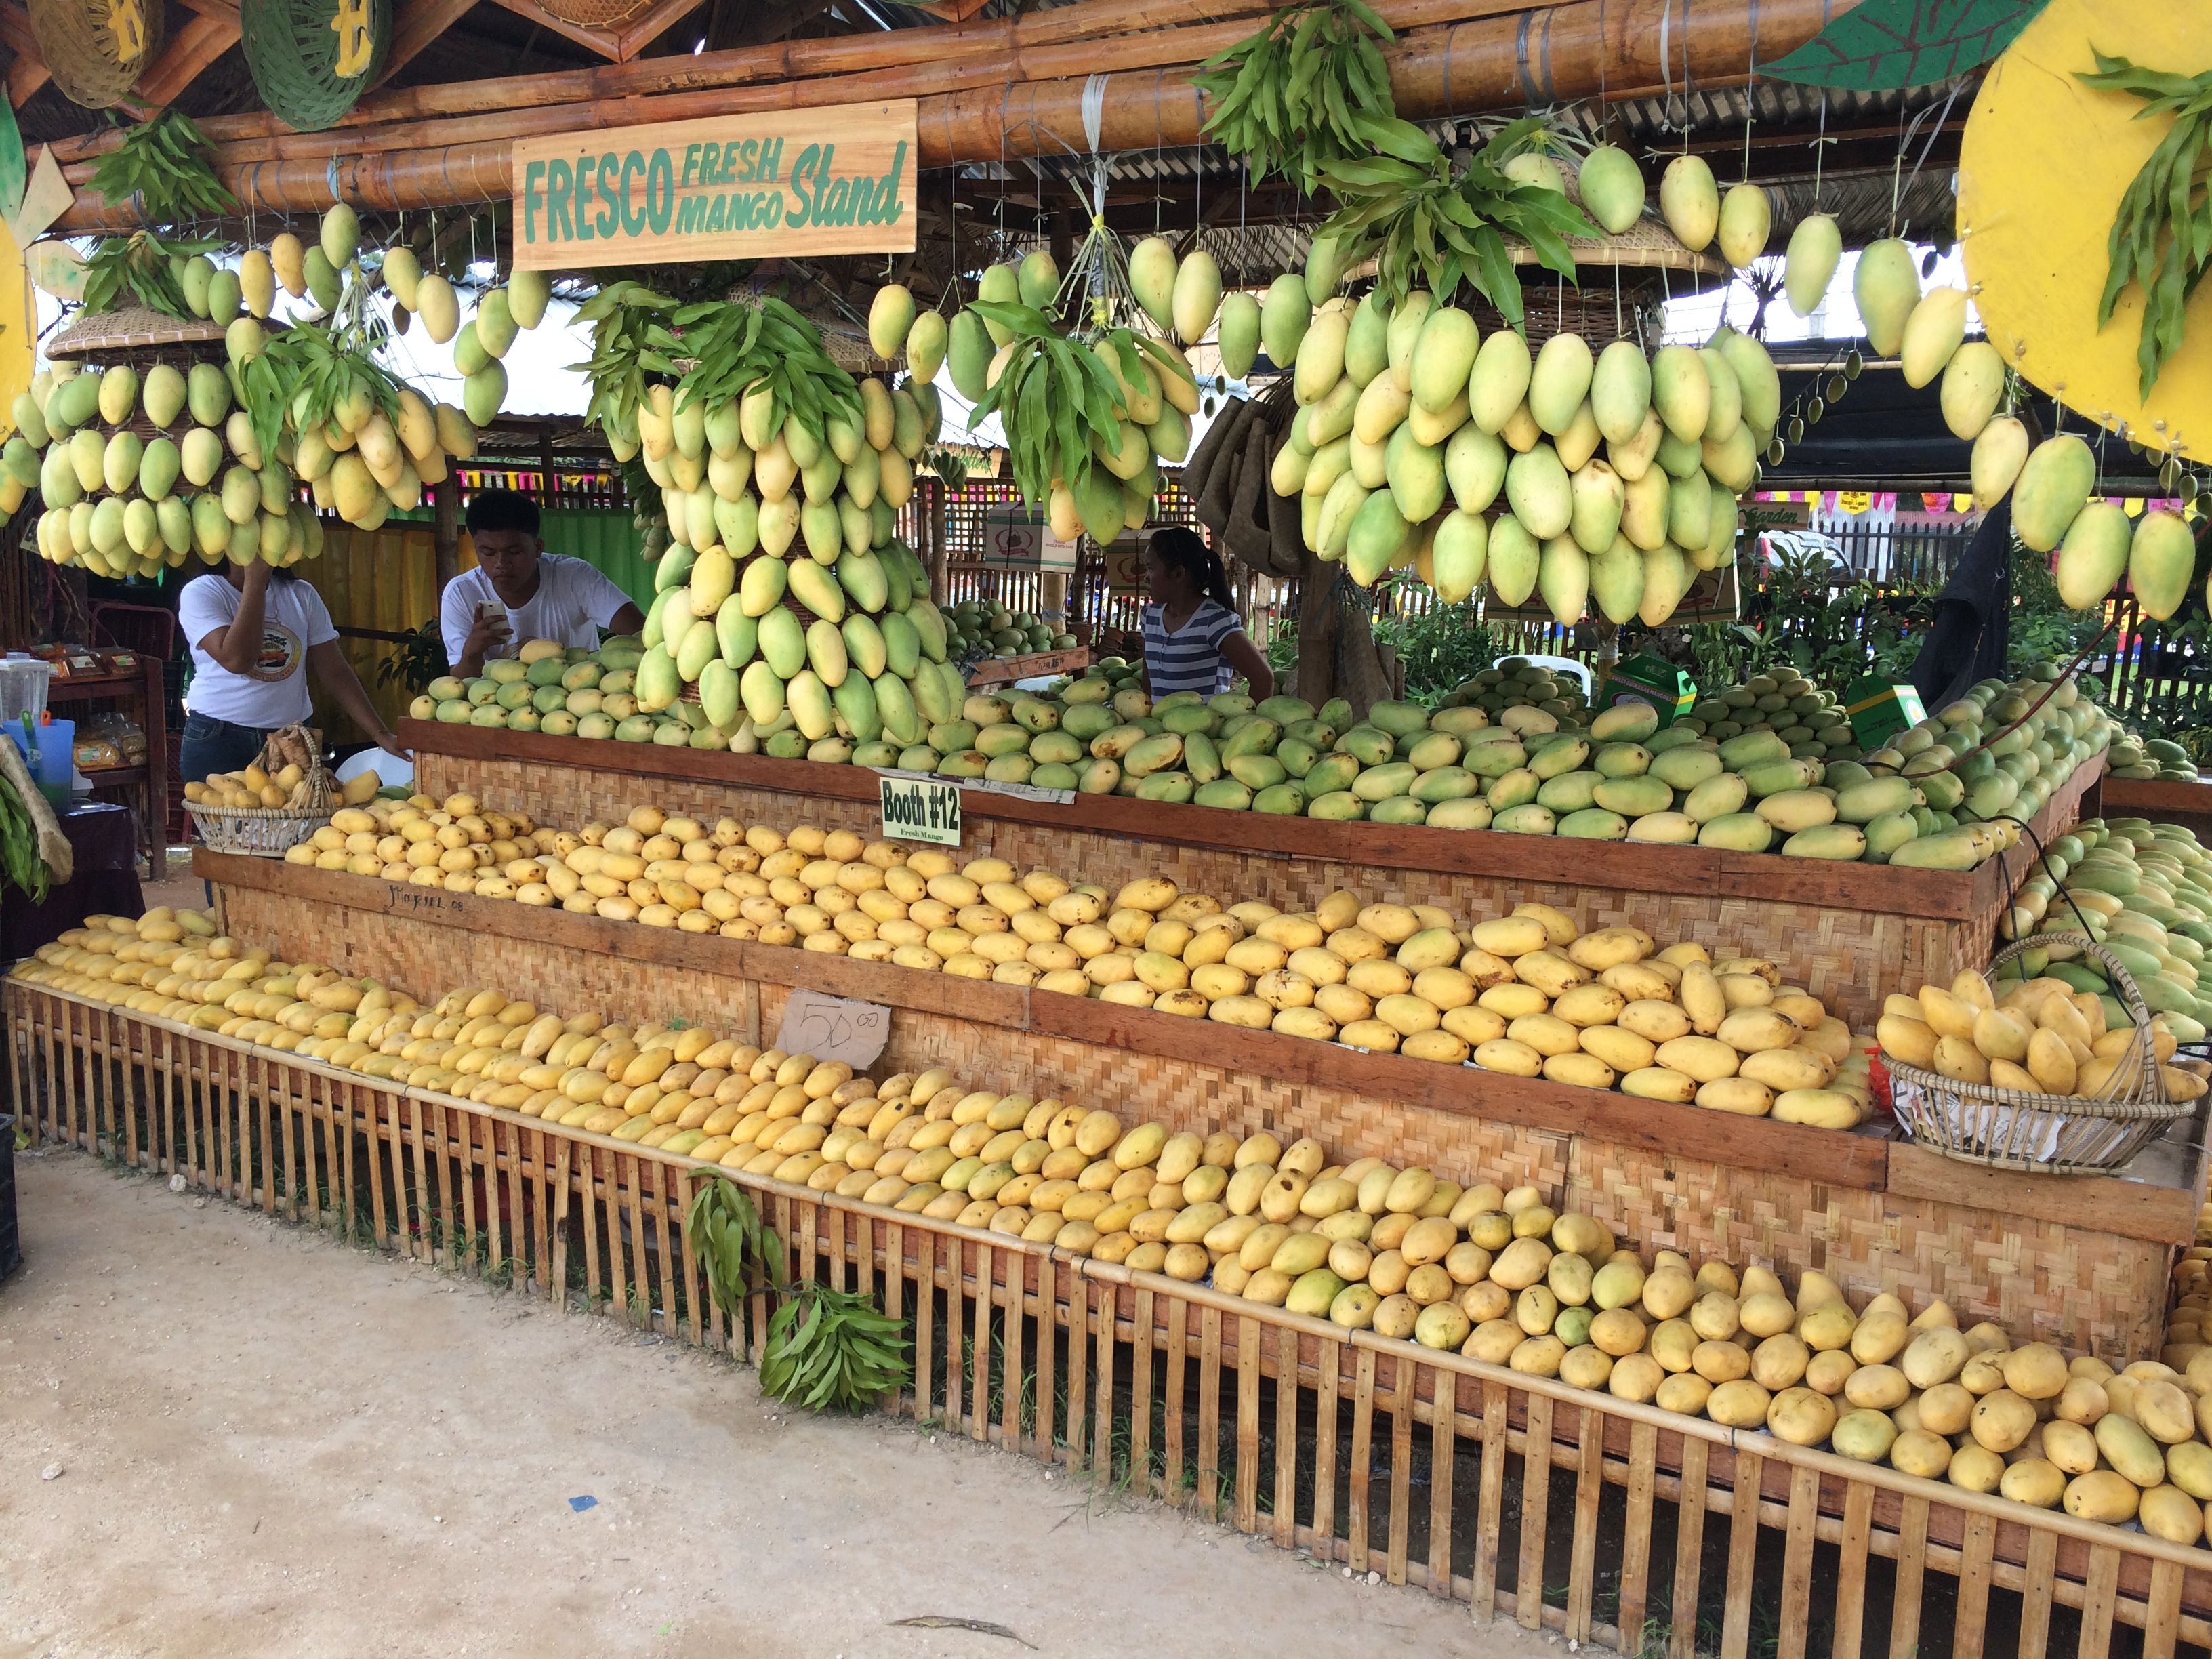 Guimaras, Philippines  Mango Festival All You Can Eat For Under $2